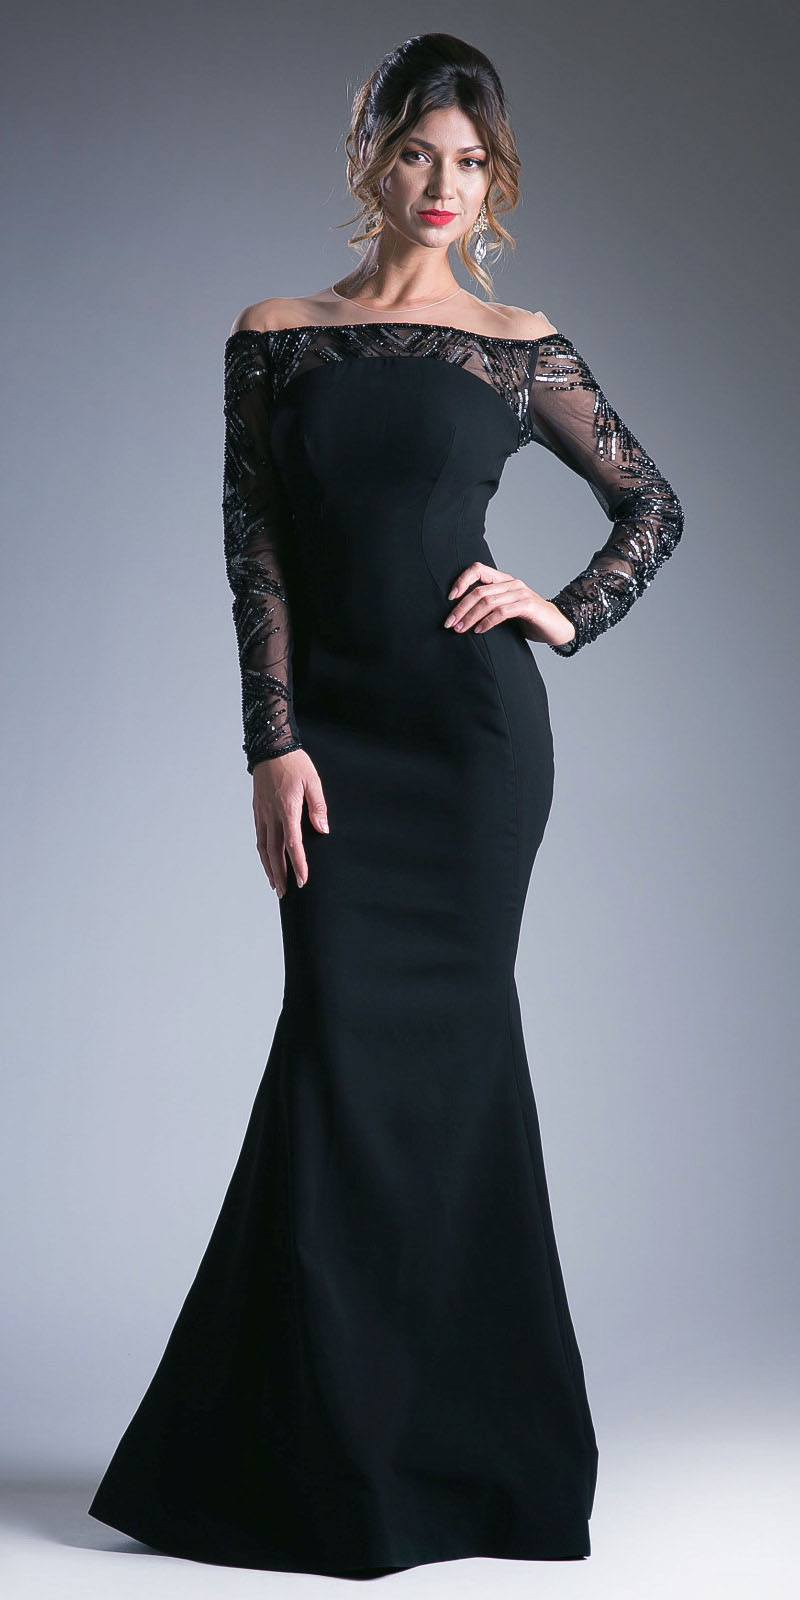 5276a9cb3139 Cinderella Divine 15078 Black Illusion Off-Shoulder Evening Gown ...